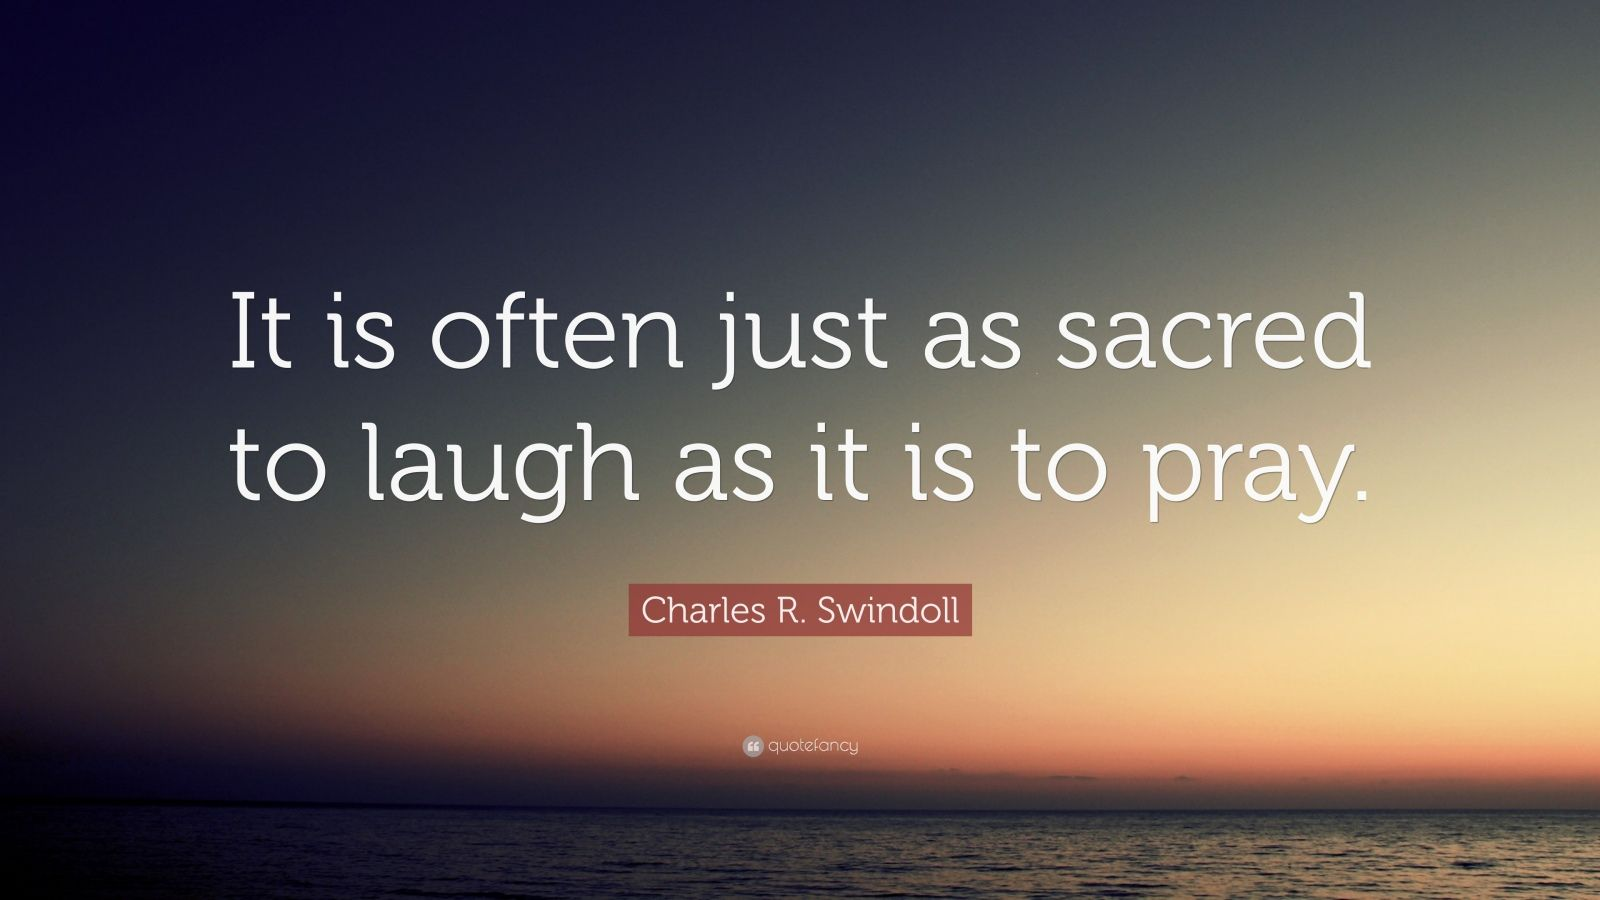 """Charles R. Swindoll Quote: """"It is often just as sacred to laugh as it is to pray."""""""